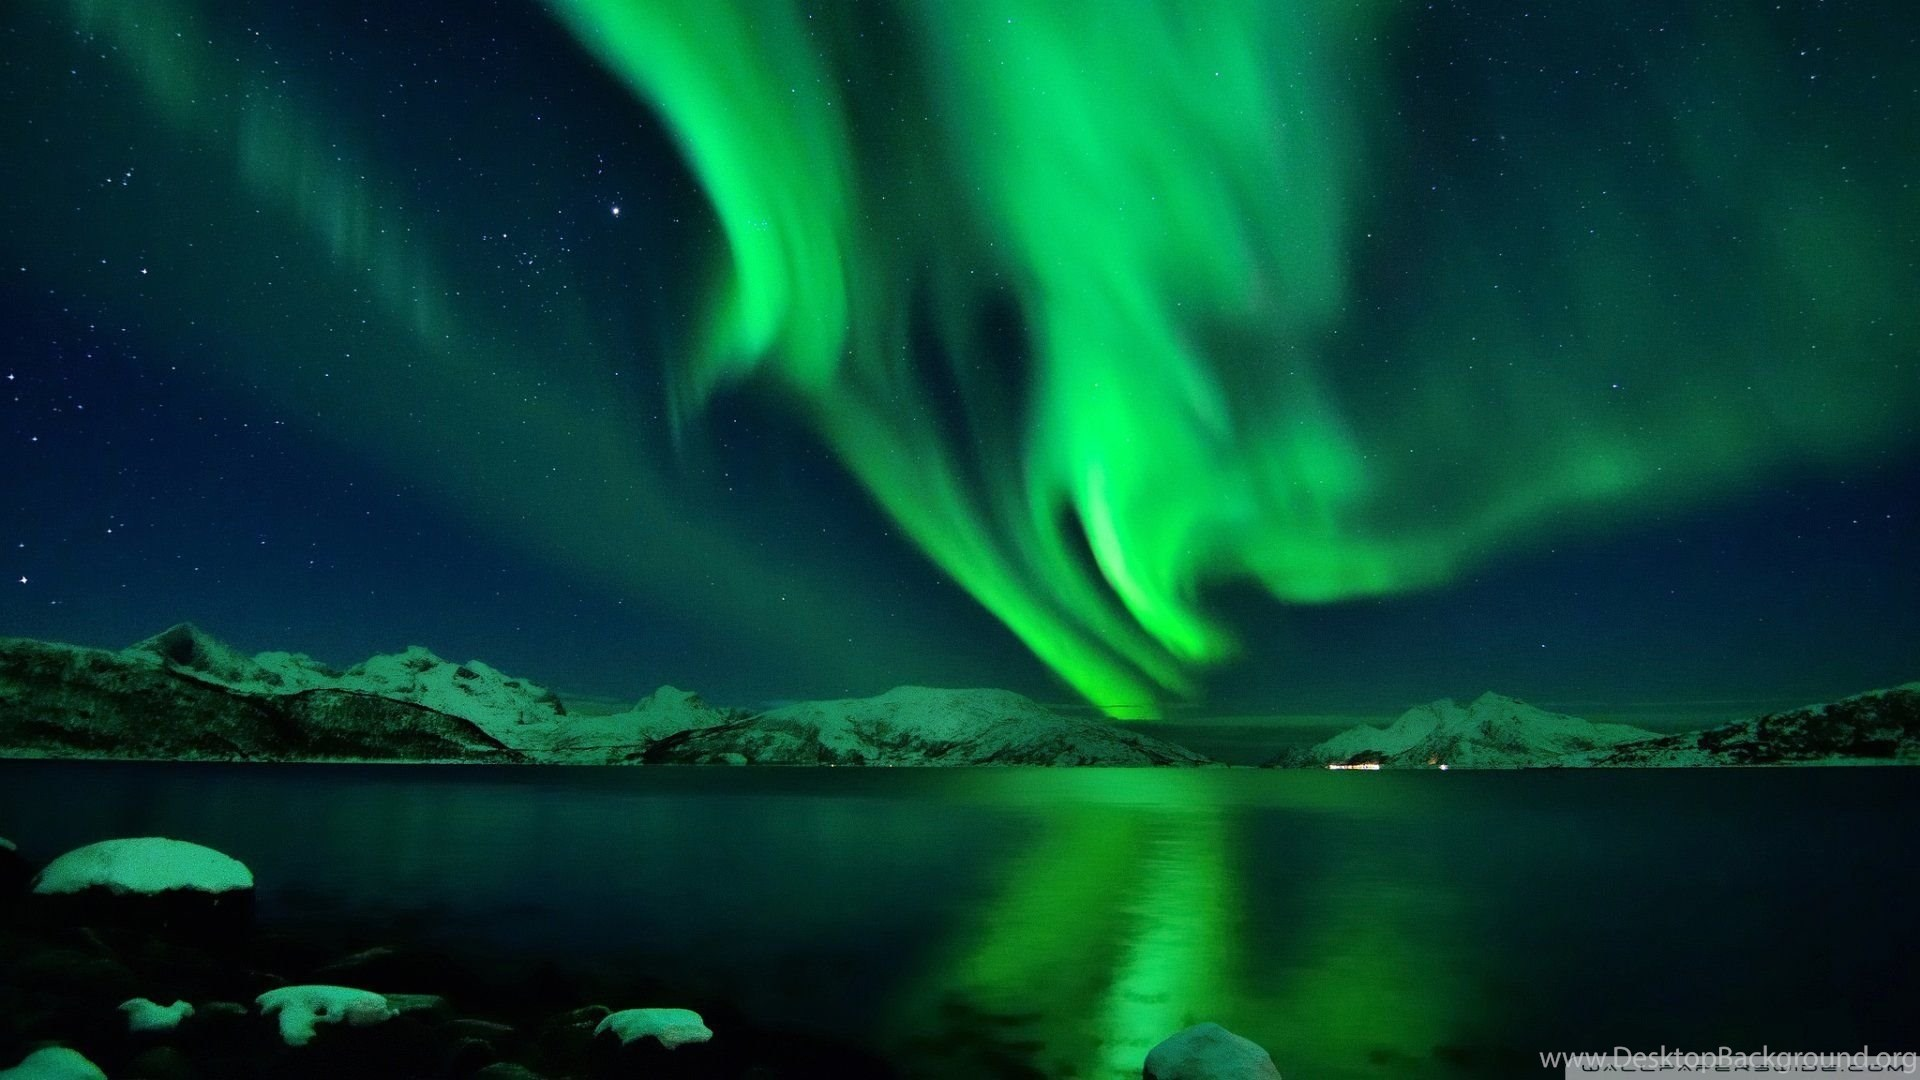 wallpapers amazing boreal aurora green 1920 x 1080 full hd 1920 x